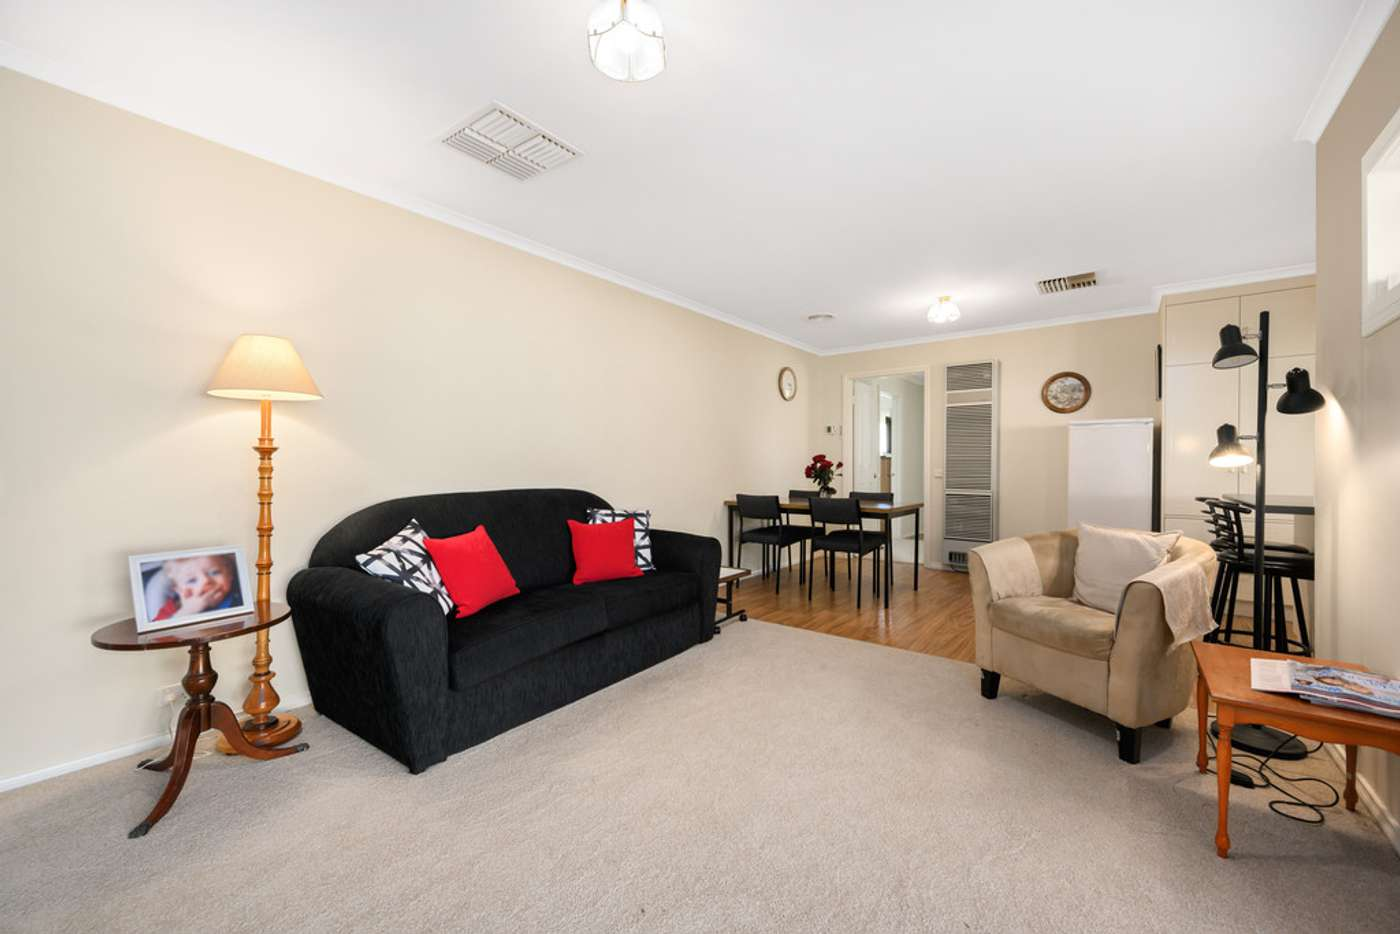 Fifth view of Homely house listing, 9 Mashie Way, Wodonga VIC 3690